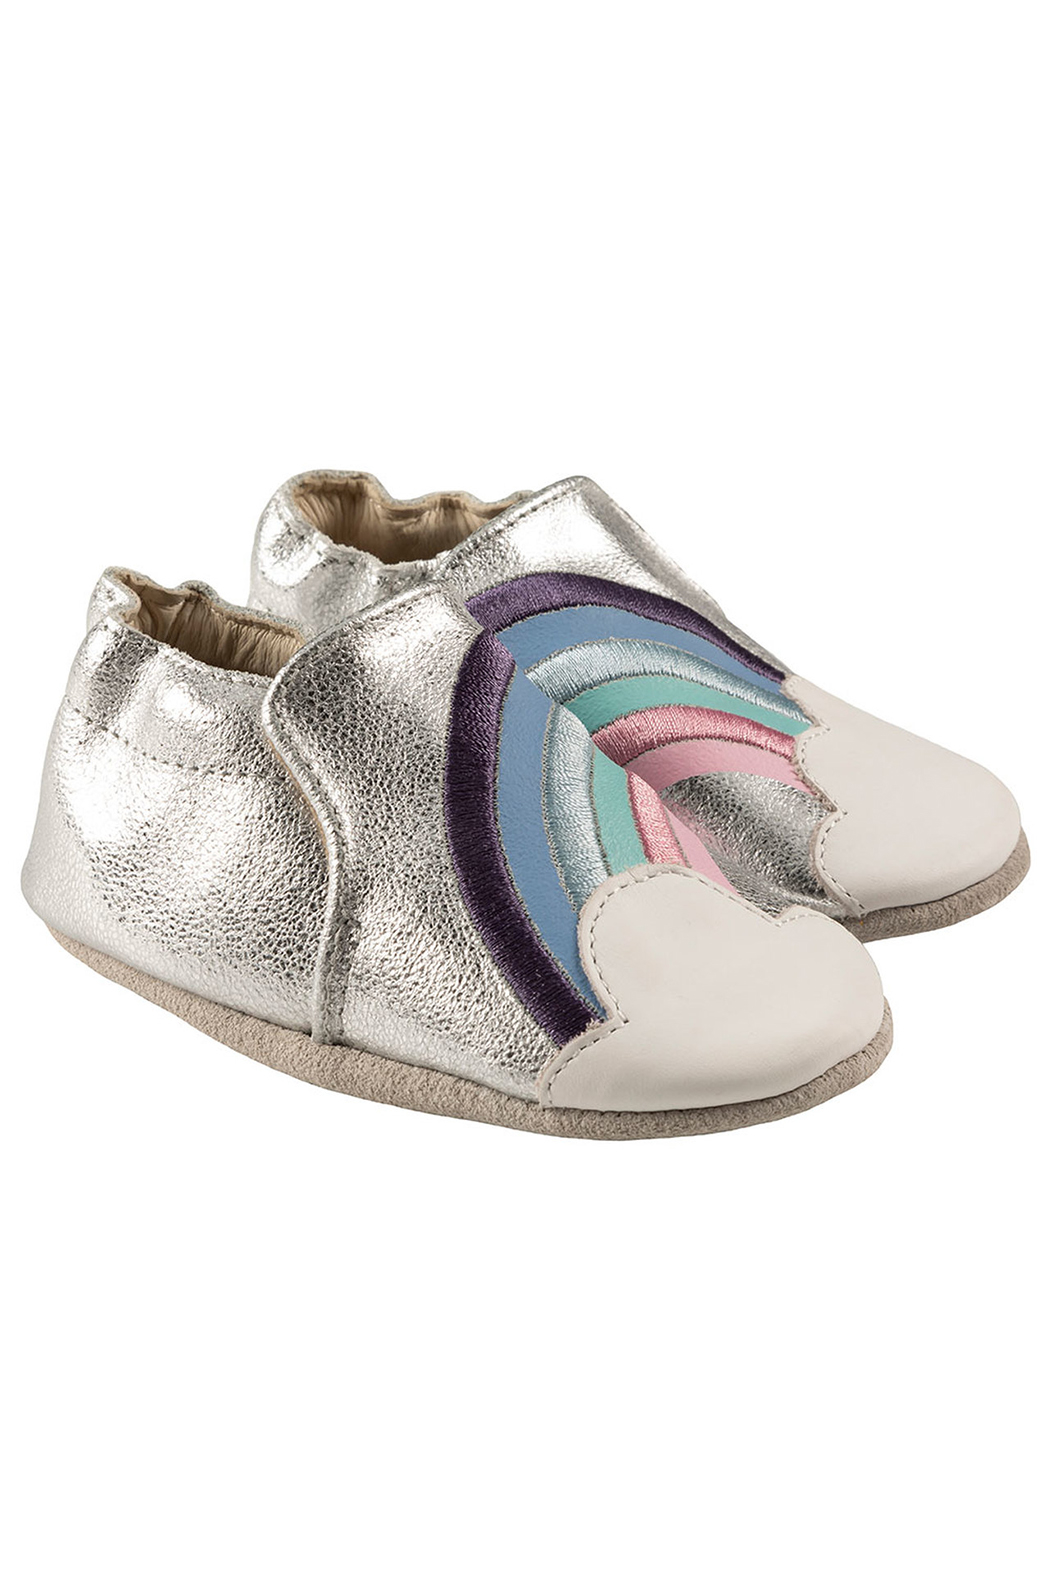 Robeez Hope Soft Soles Baby Shoes - Main Image